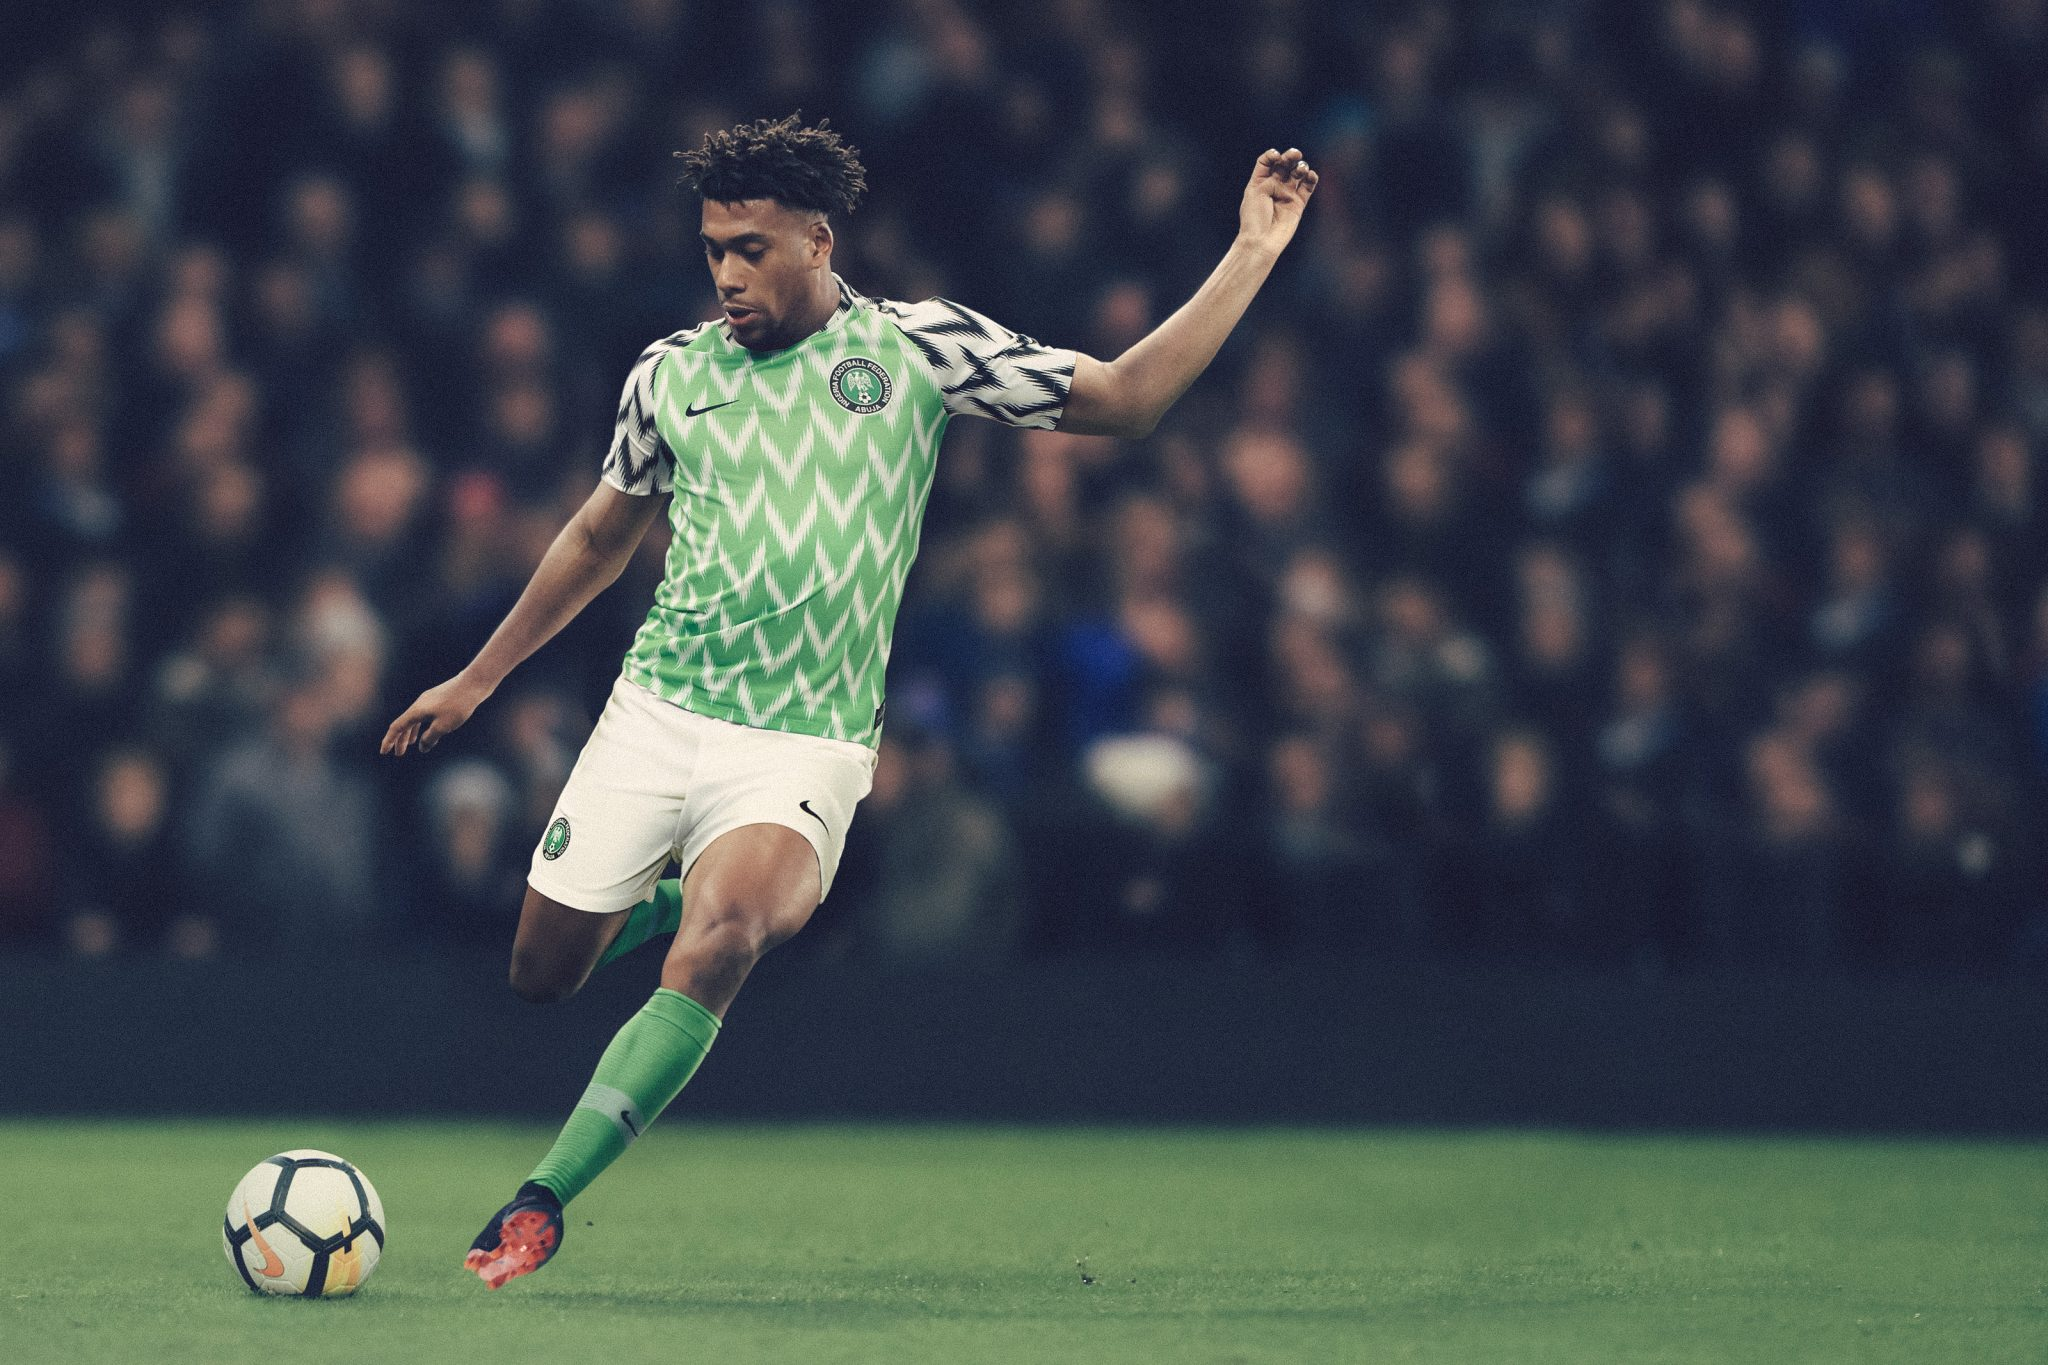 Nike-News-Football-Soccer-Nigeria-National-Team-Kit-12_original